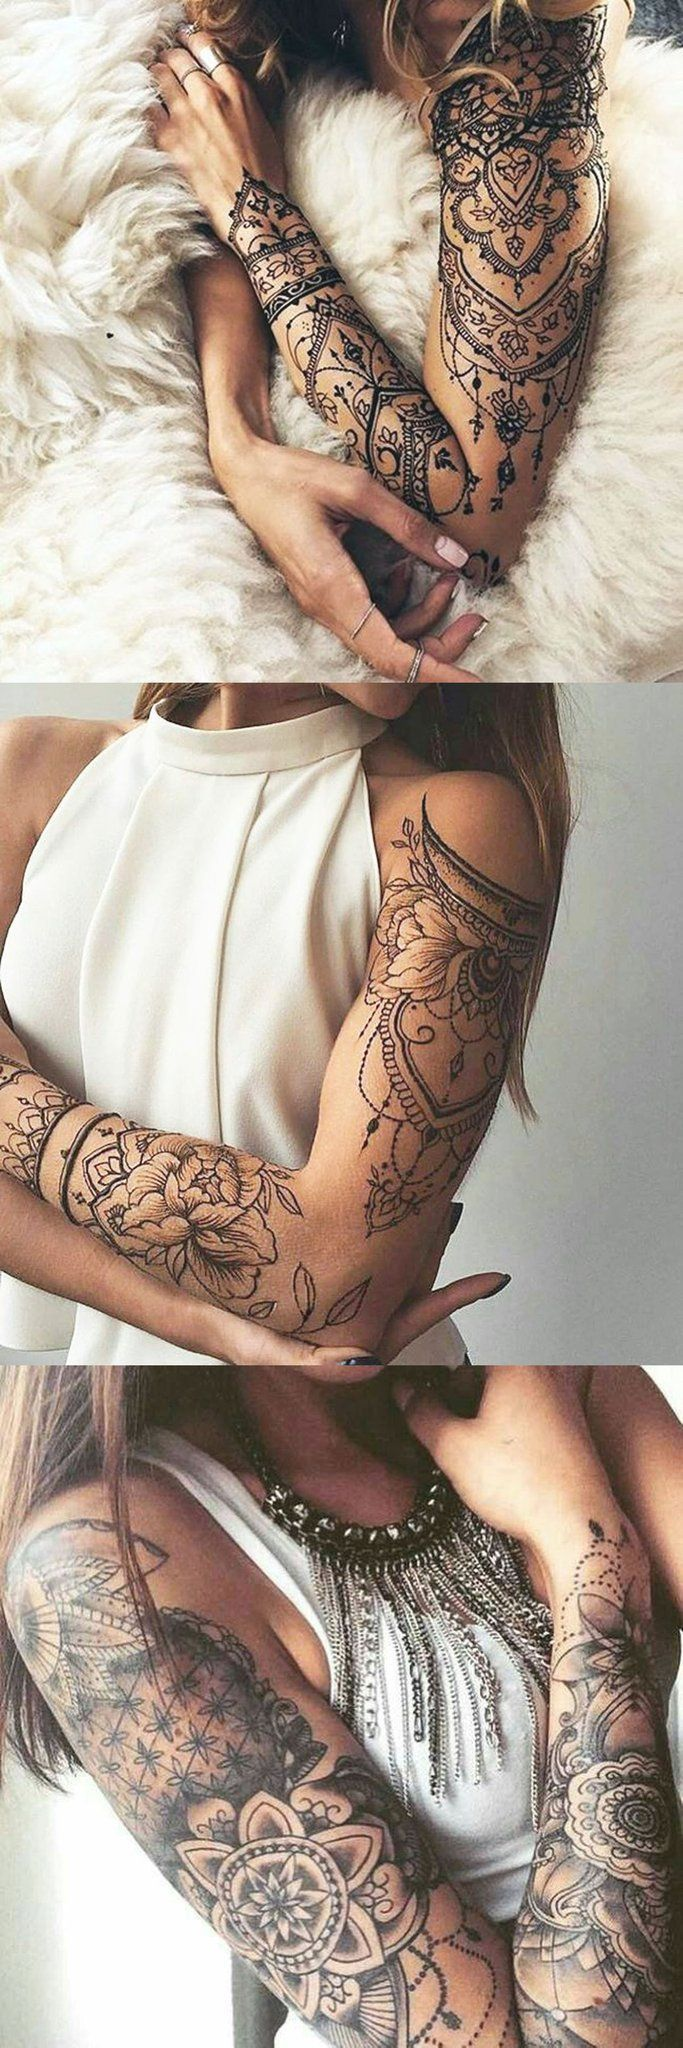 Lotus Arm Sleeve Tattoo Ideas for Women at MyBodiArt.com - Tribal Mandala Arm Bi...